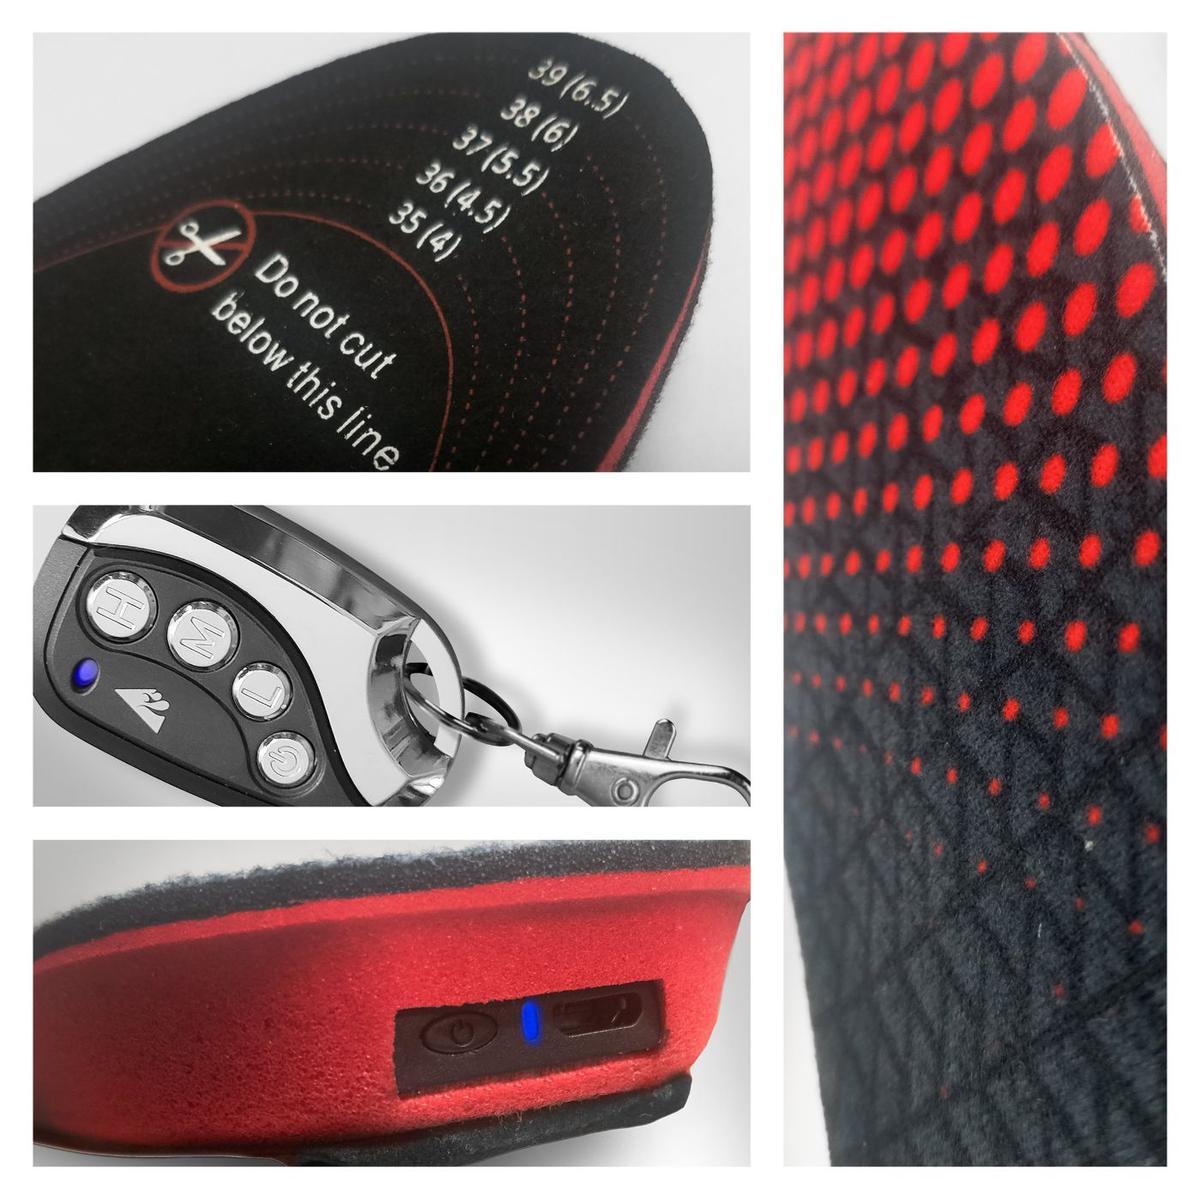 ActionHeat Rechargeable Heated Insoles with Remote - Right